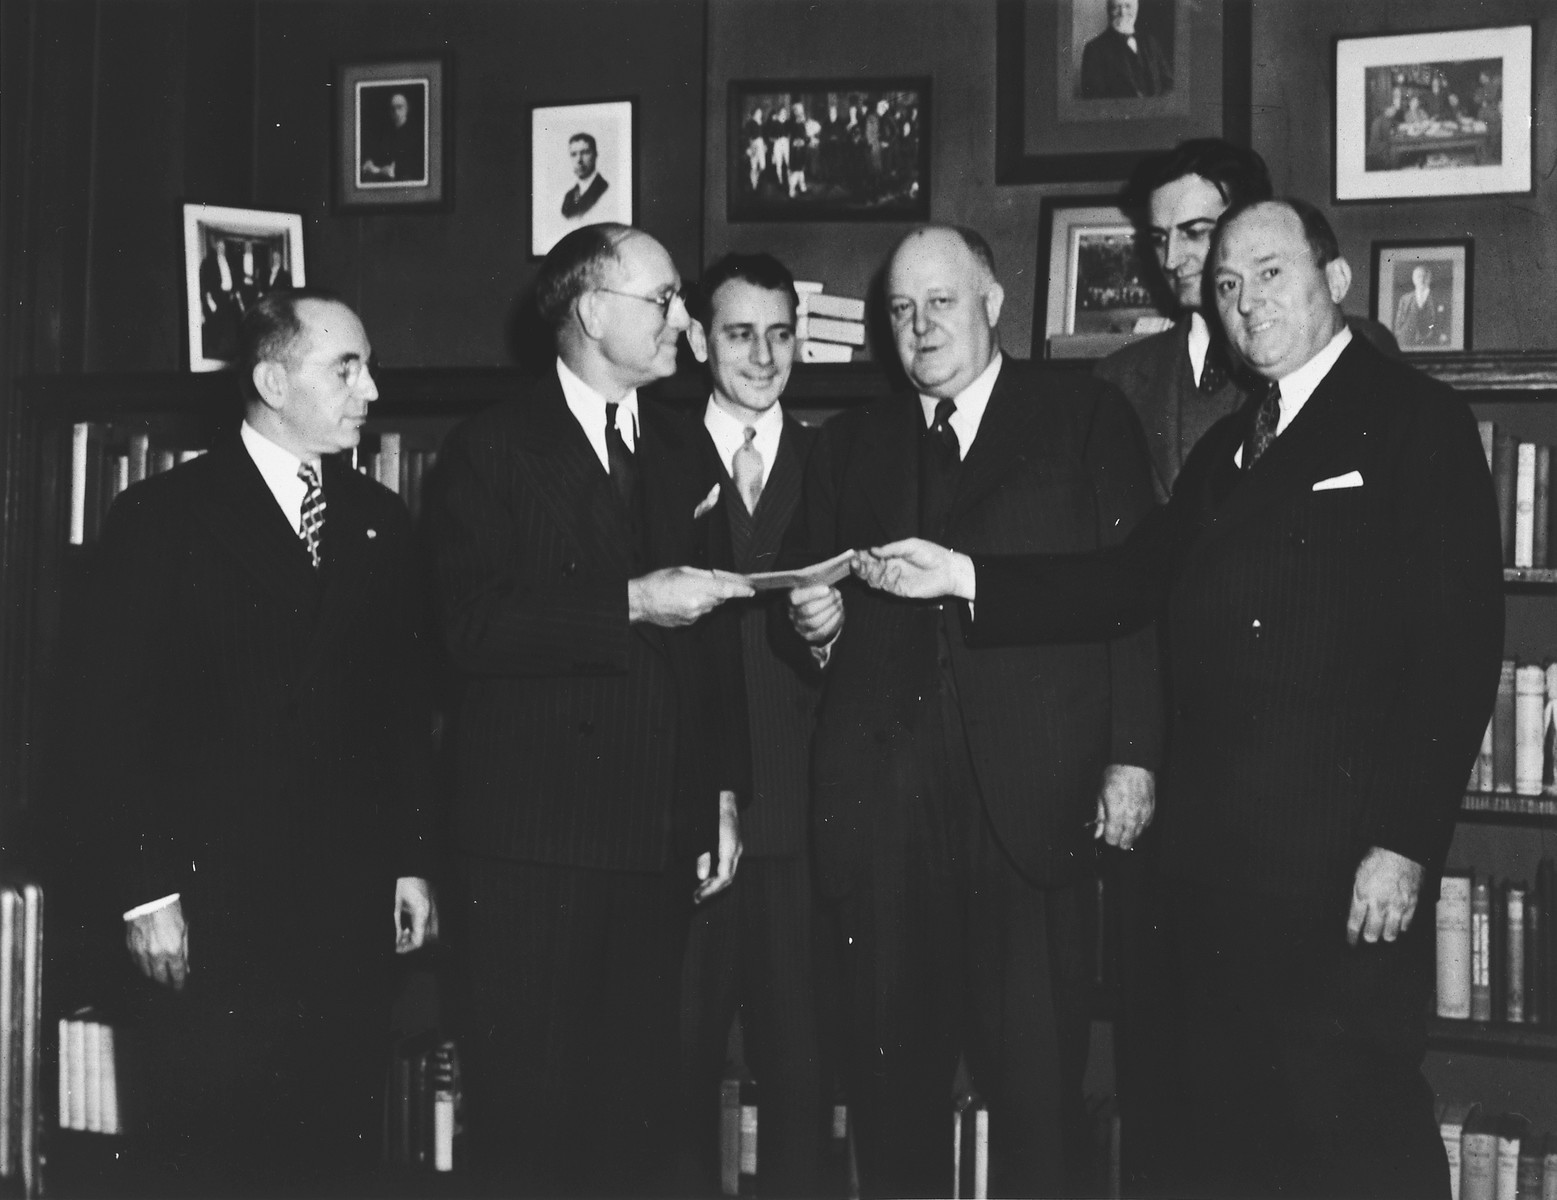 The Bnai Brith Lodge #1 presents a check of $1500 to the British War Relief Society through the Interfaith Committee for Aid to the Democracies.  From left to right are Rabbi William Franklin Rosenblum, Dr. Harold Korn and Lester J. Waldman, president of the Bnai Brith Lodge #1, Dr. Henry Atkinson, General Secretary of the Interfaith Committee, Richard Fagley, Educational Secretary Church Peace Union, Frederick W. Gehle, Chairman Fundraising Division of the British War Relief Society.